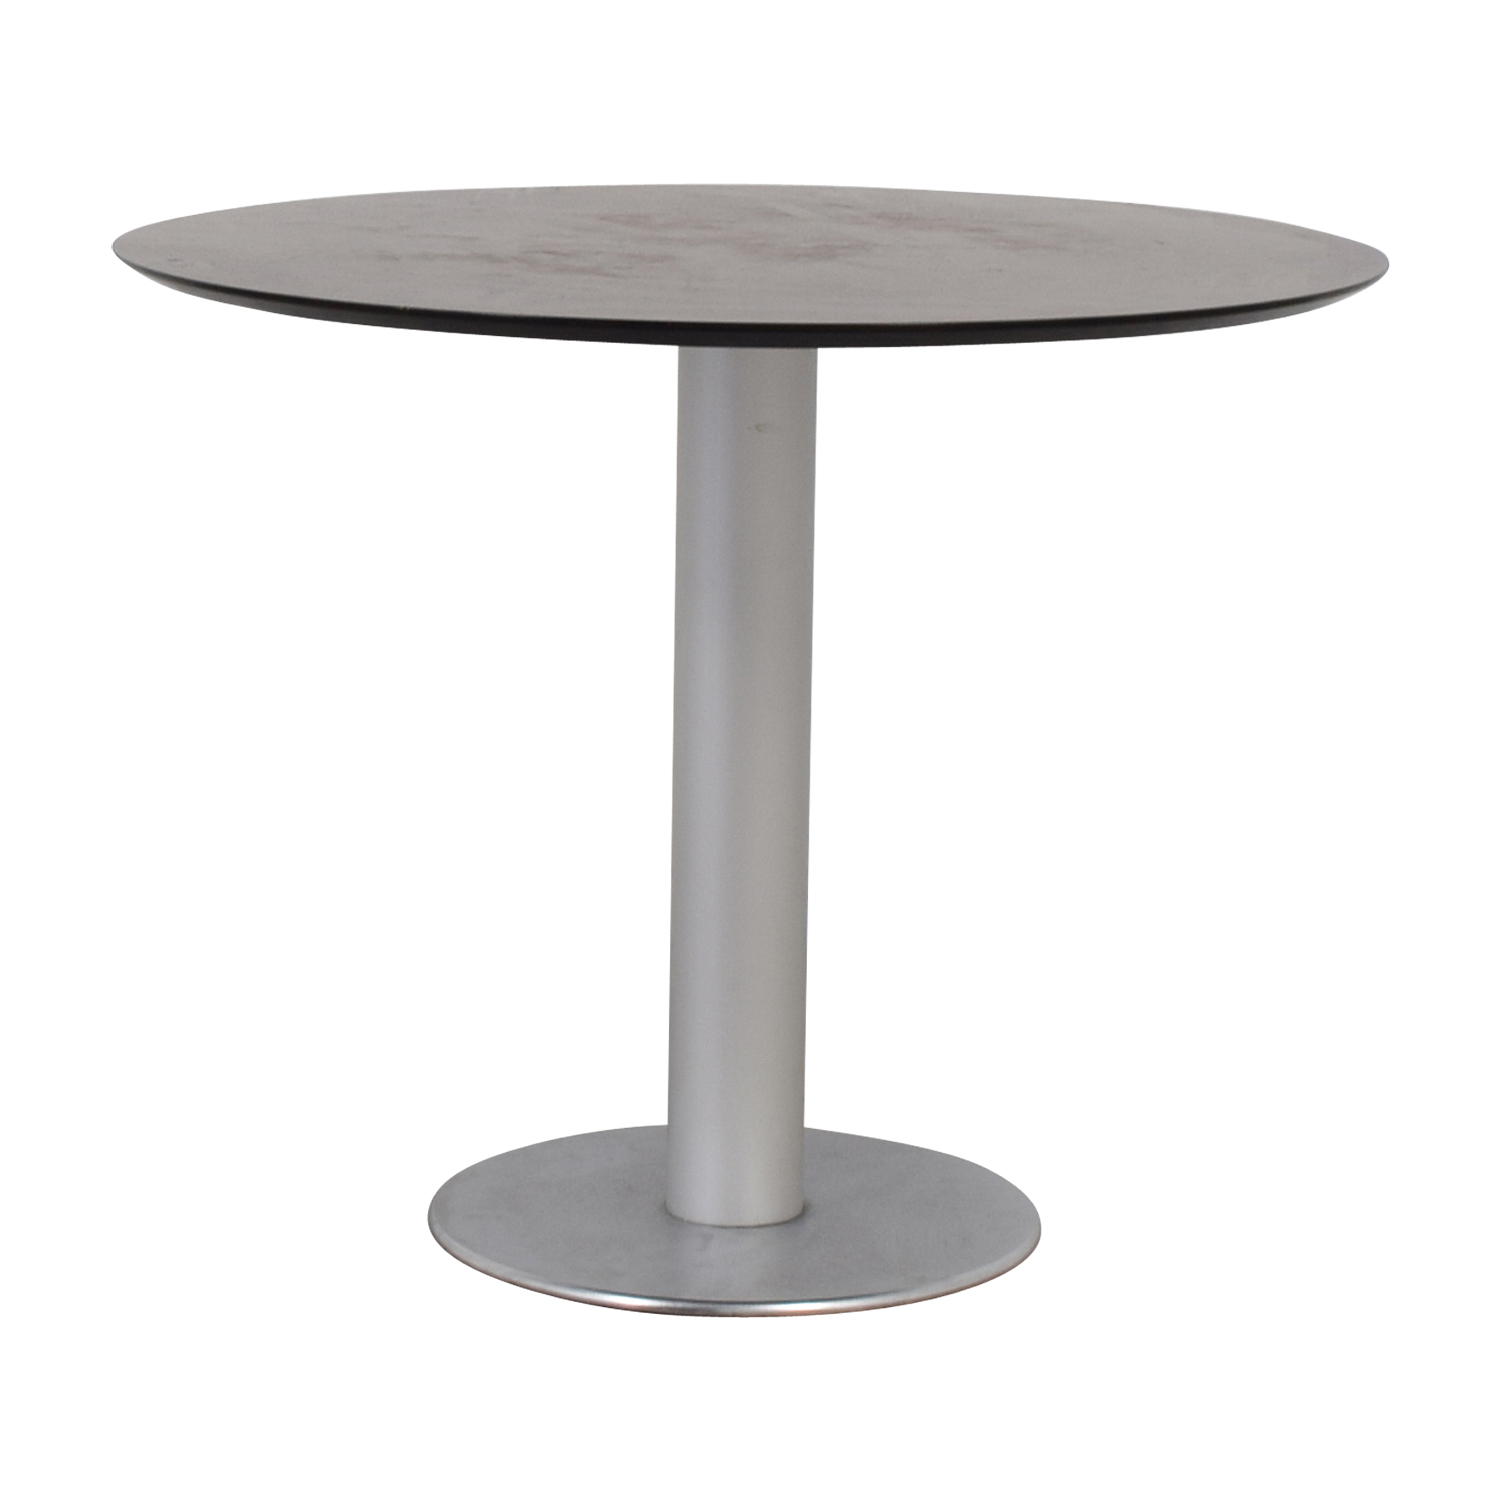 Stua Zero Wood and Chrome Round Table sale